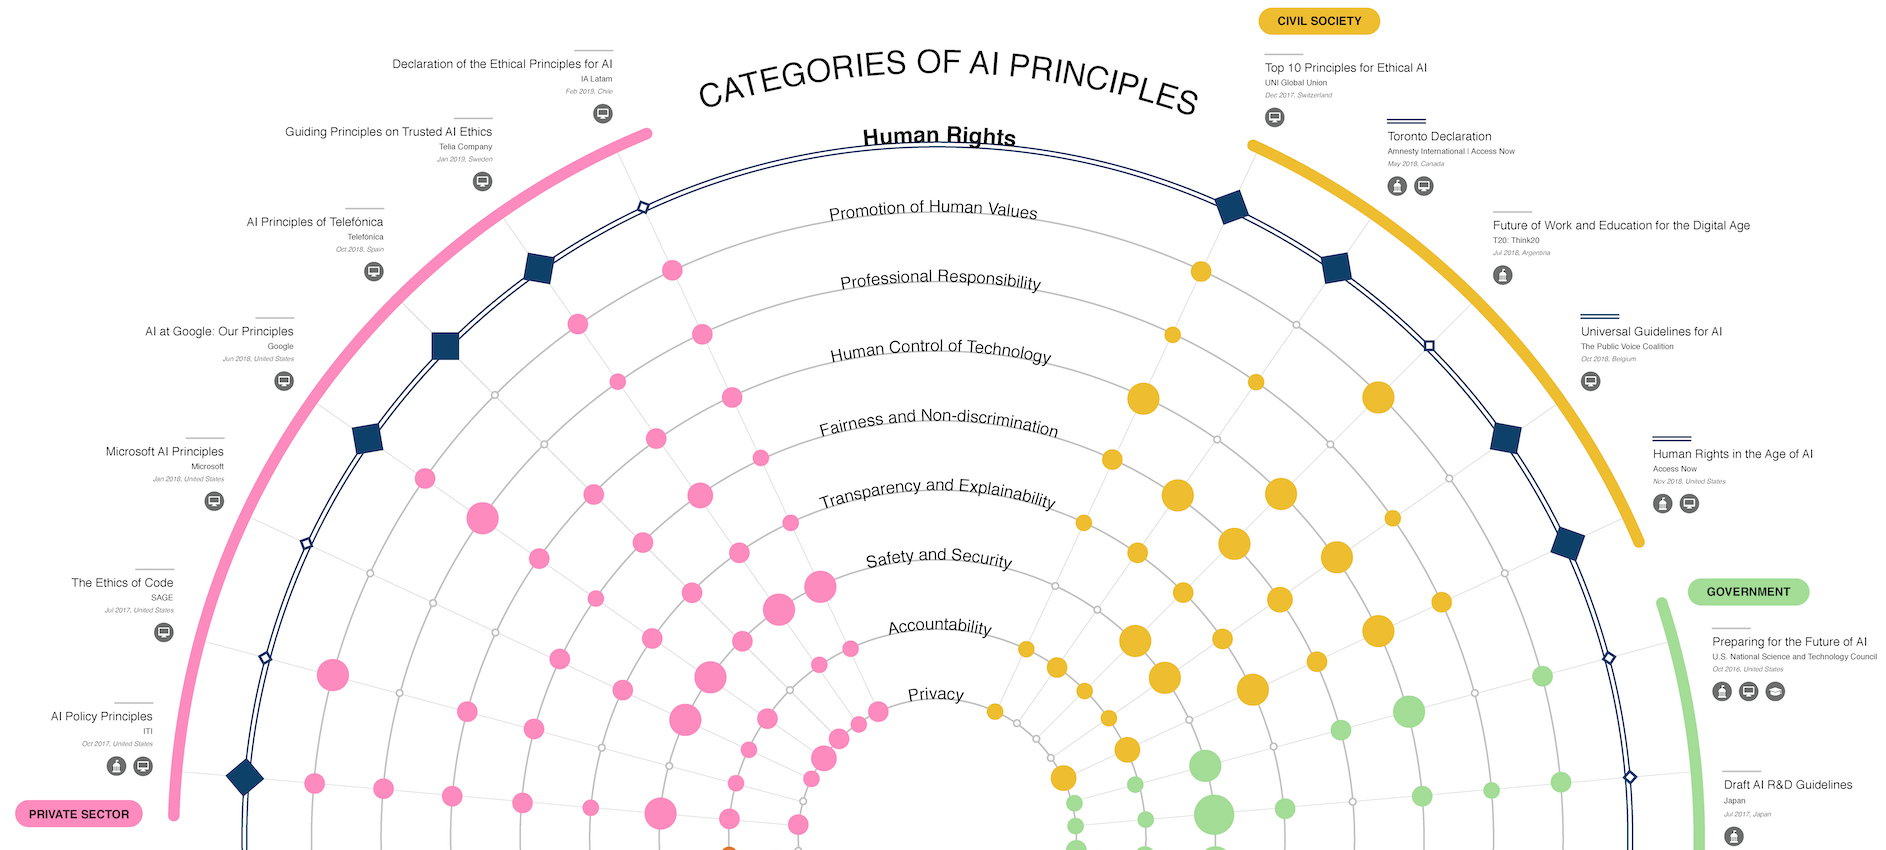 A Map of Ethical and Right-Based Approaches. Source: https://ai-hr.cyber.harvard.edu/primp-viz.html